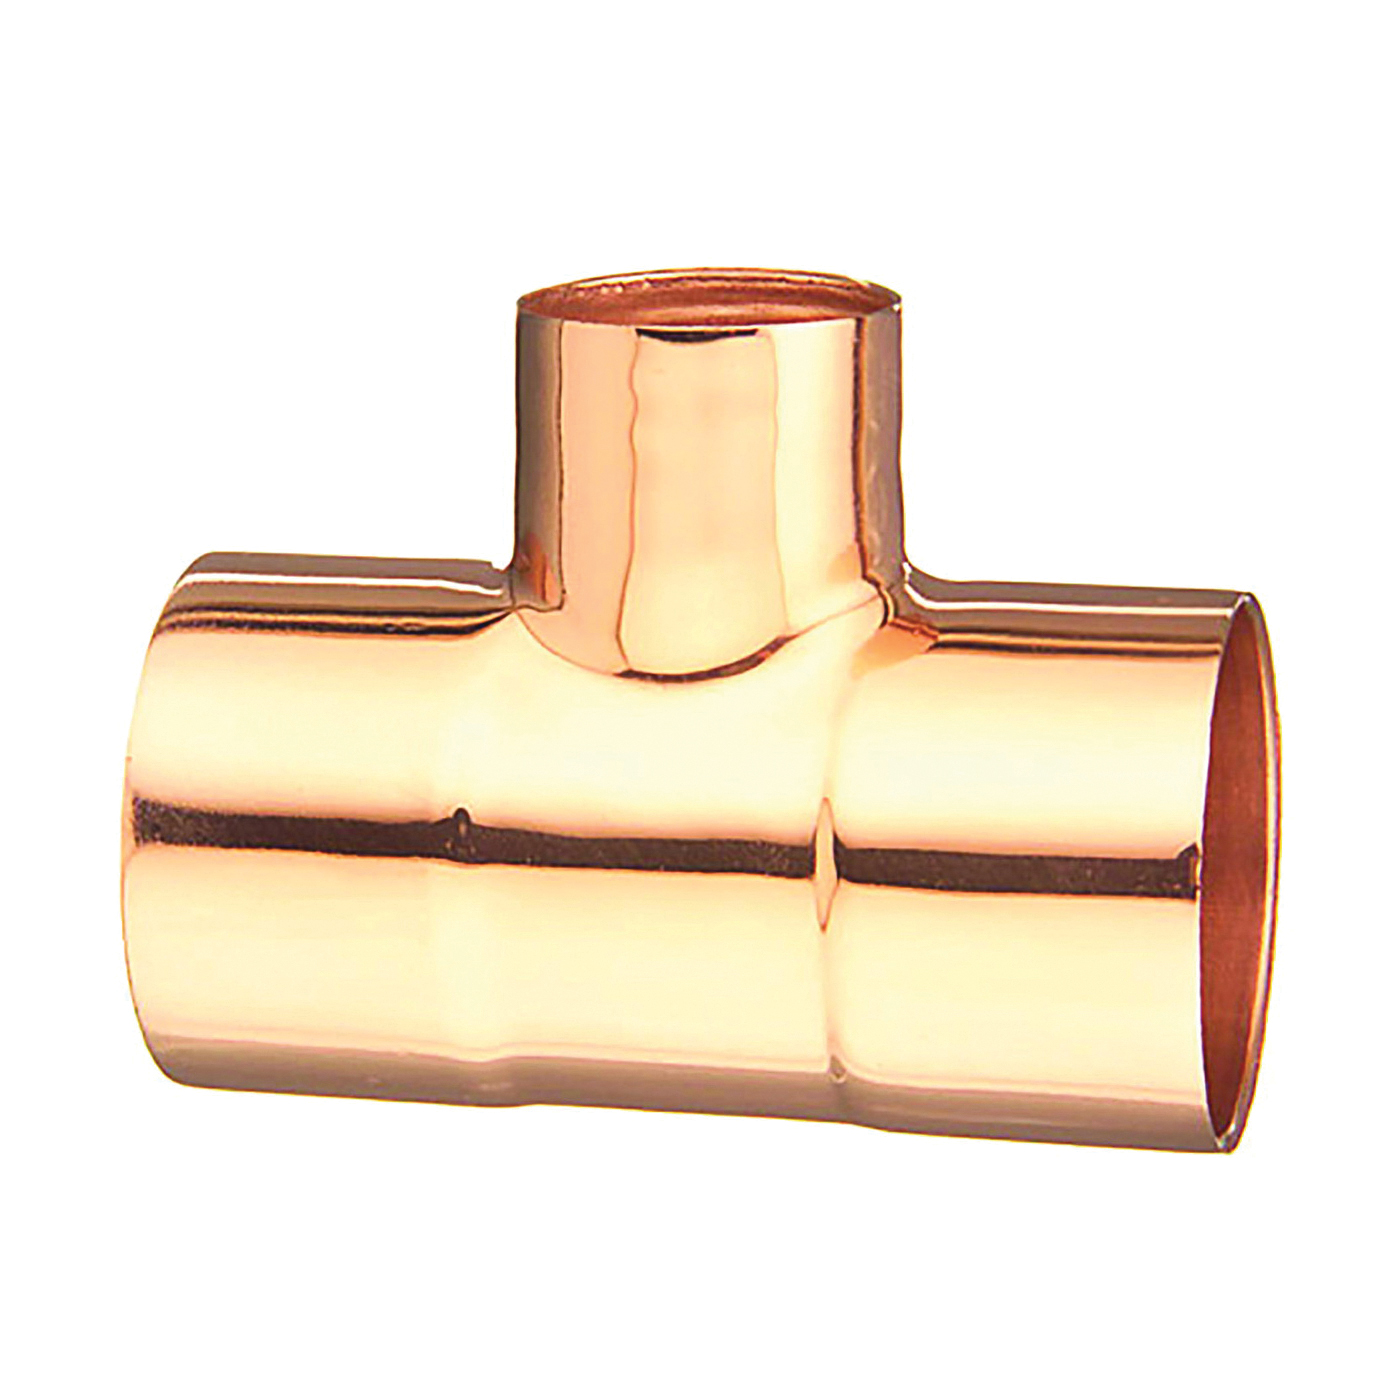 Picture of EPC 111R Series 329782X2X1 Pipe Reducing Tee, 2 x 2 x 1 in, Sweat, Wrot Copper